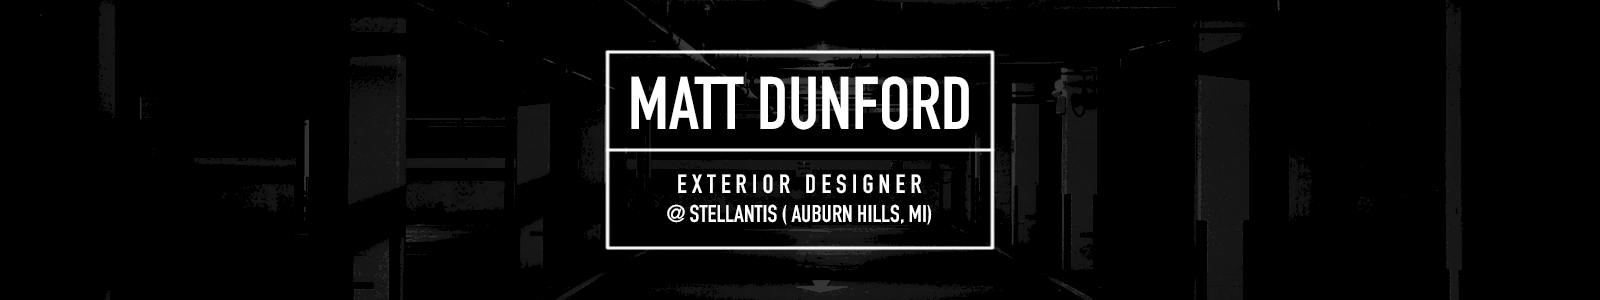 MATT DUNFORD